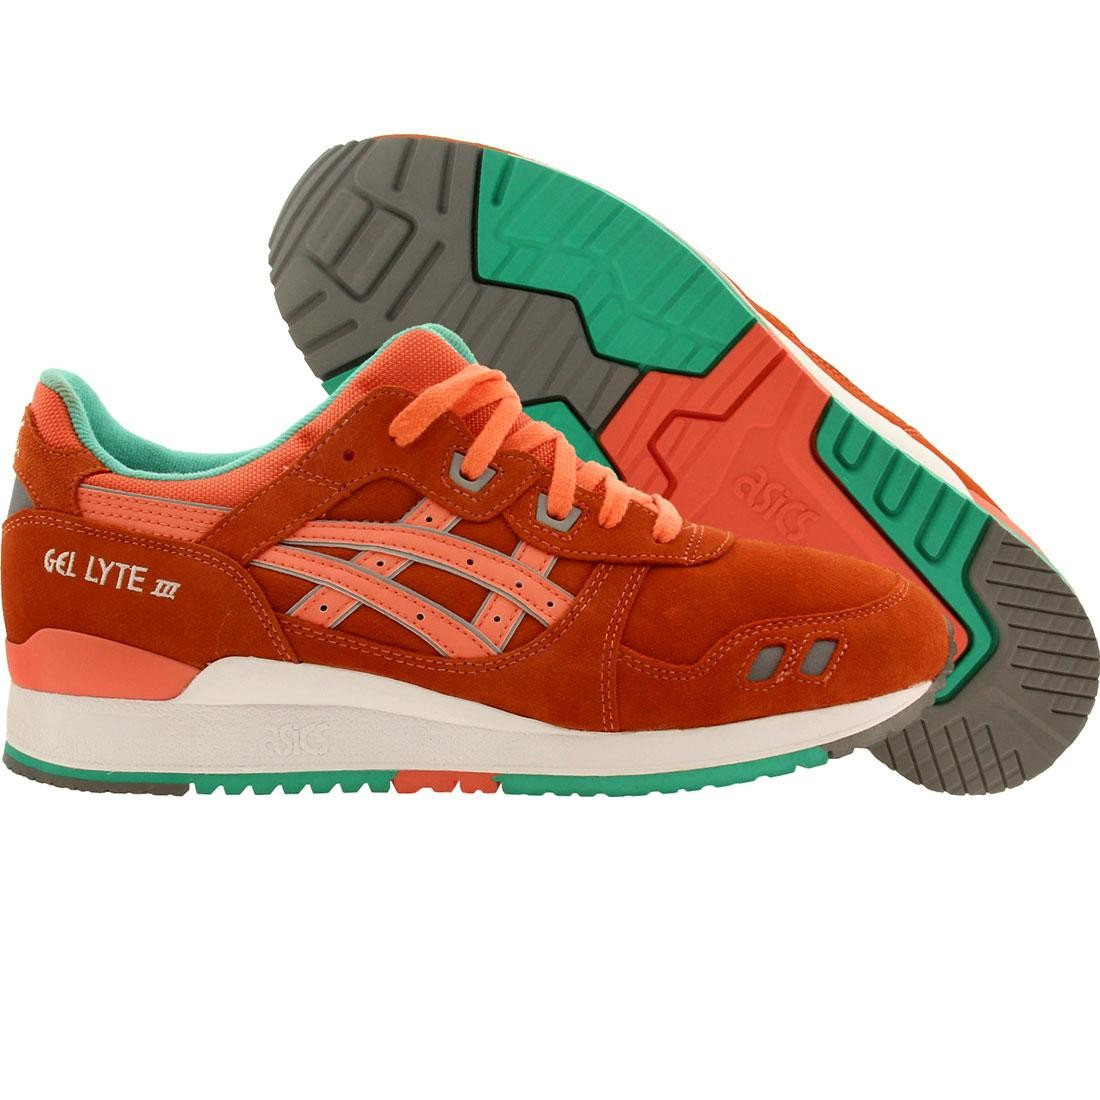 sirena guapo Máxima  Asics Men Gel Lyte III (orange / fresh salmon / fresh salmon)